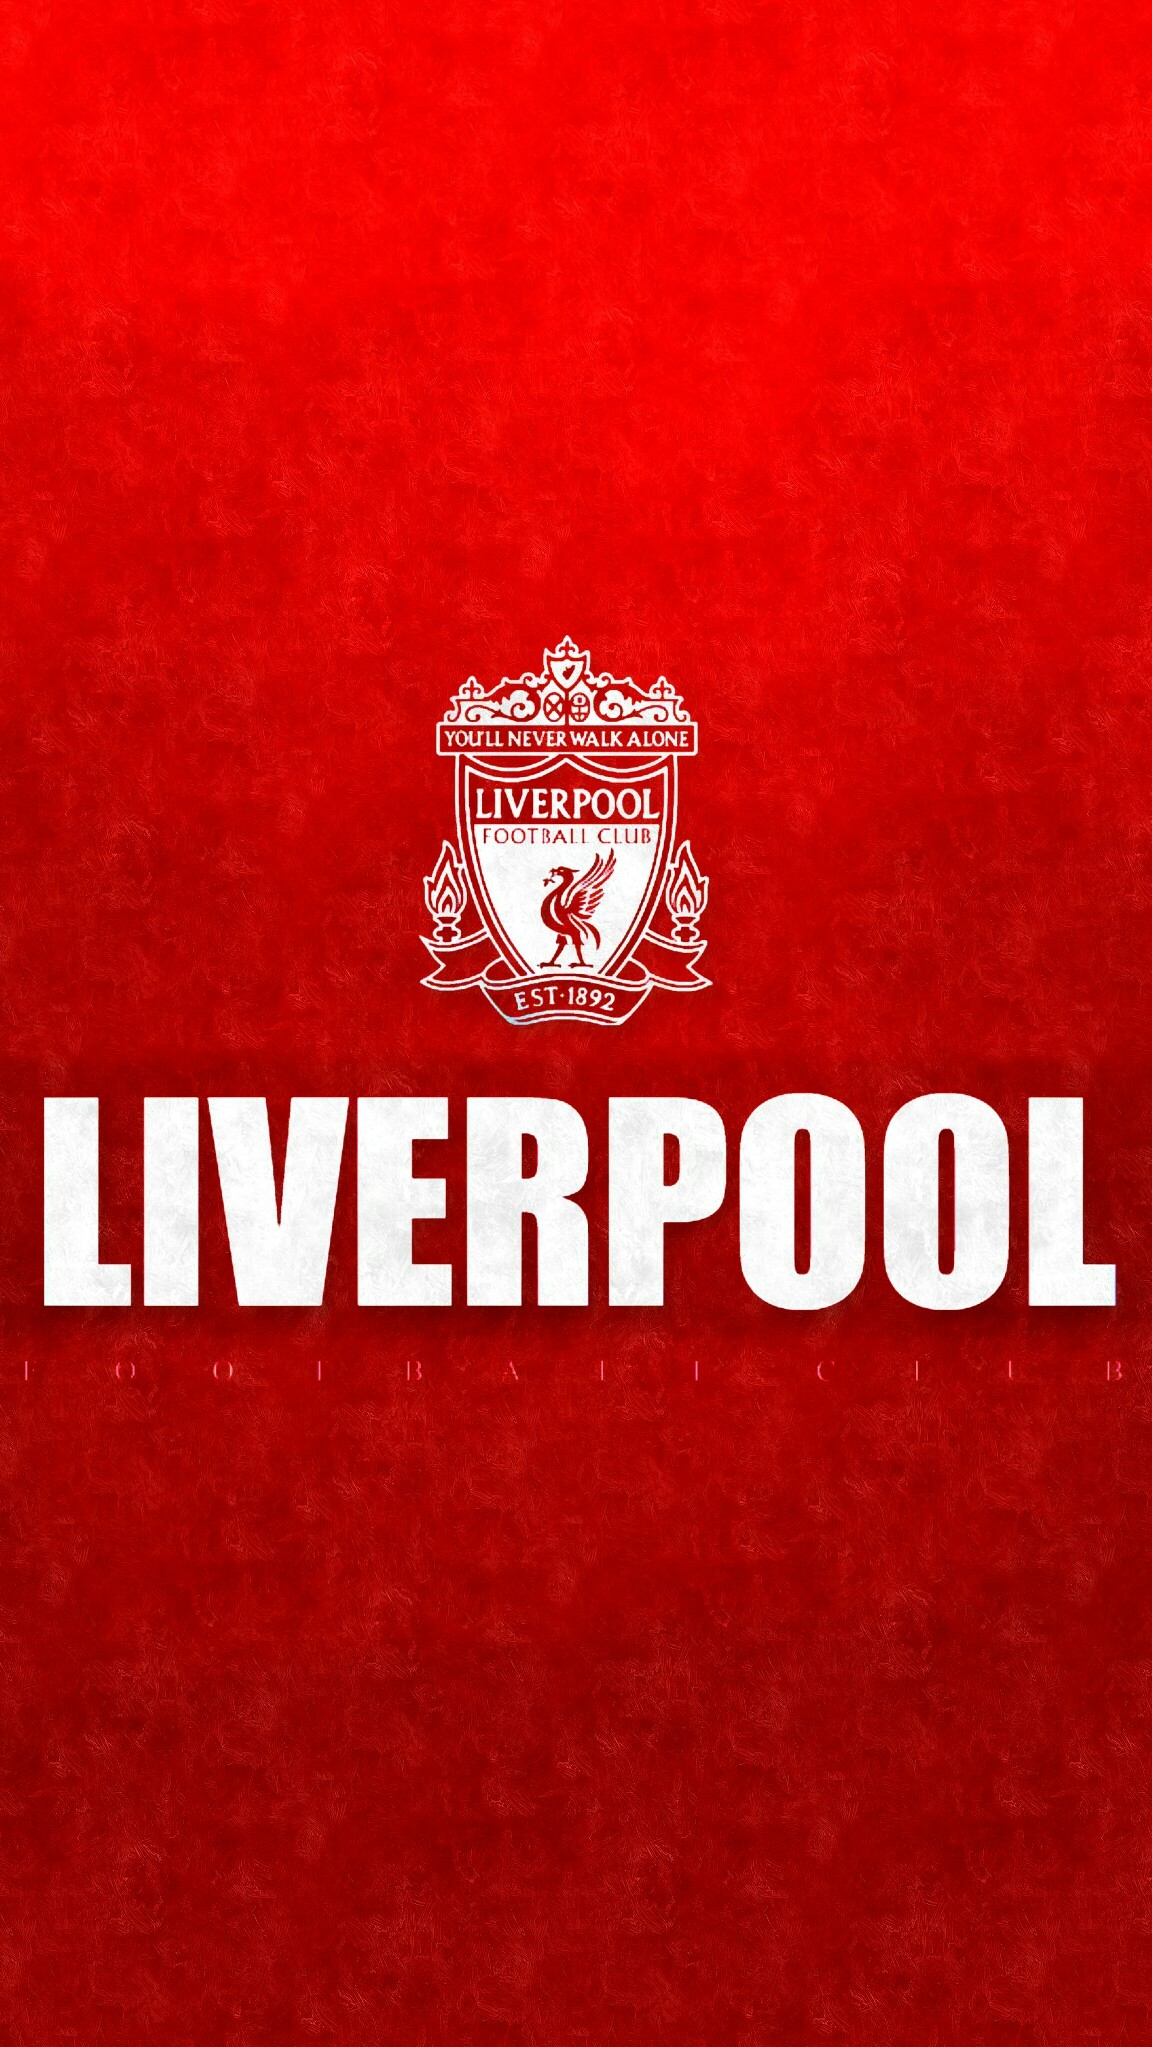 Lfc wallpaper 58 images - Lfc pictures free ...